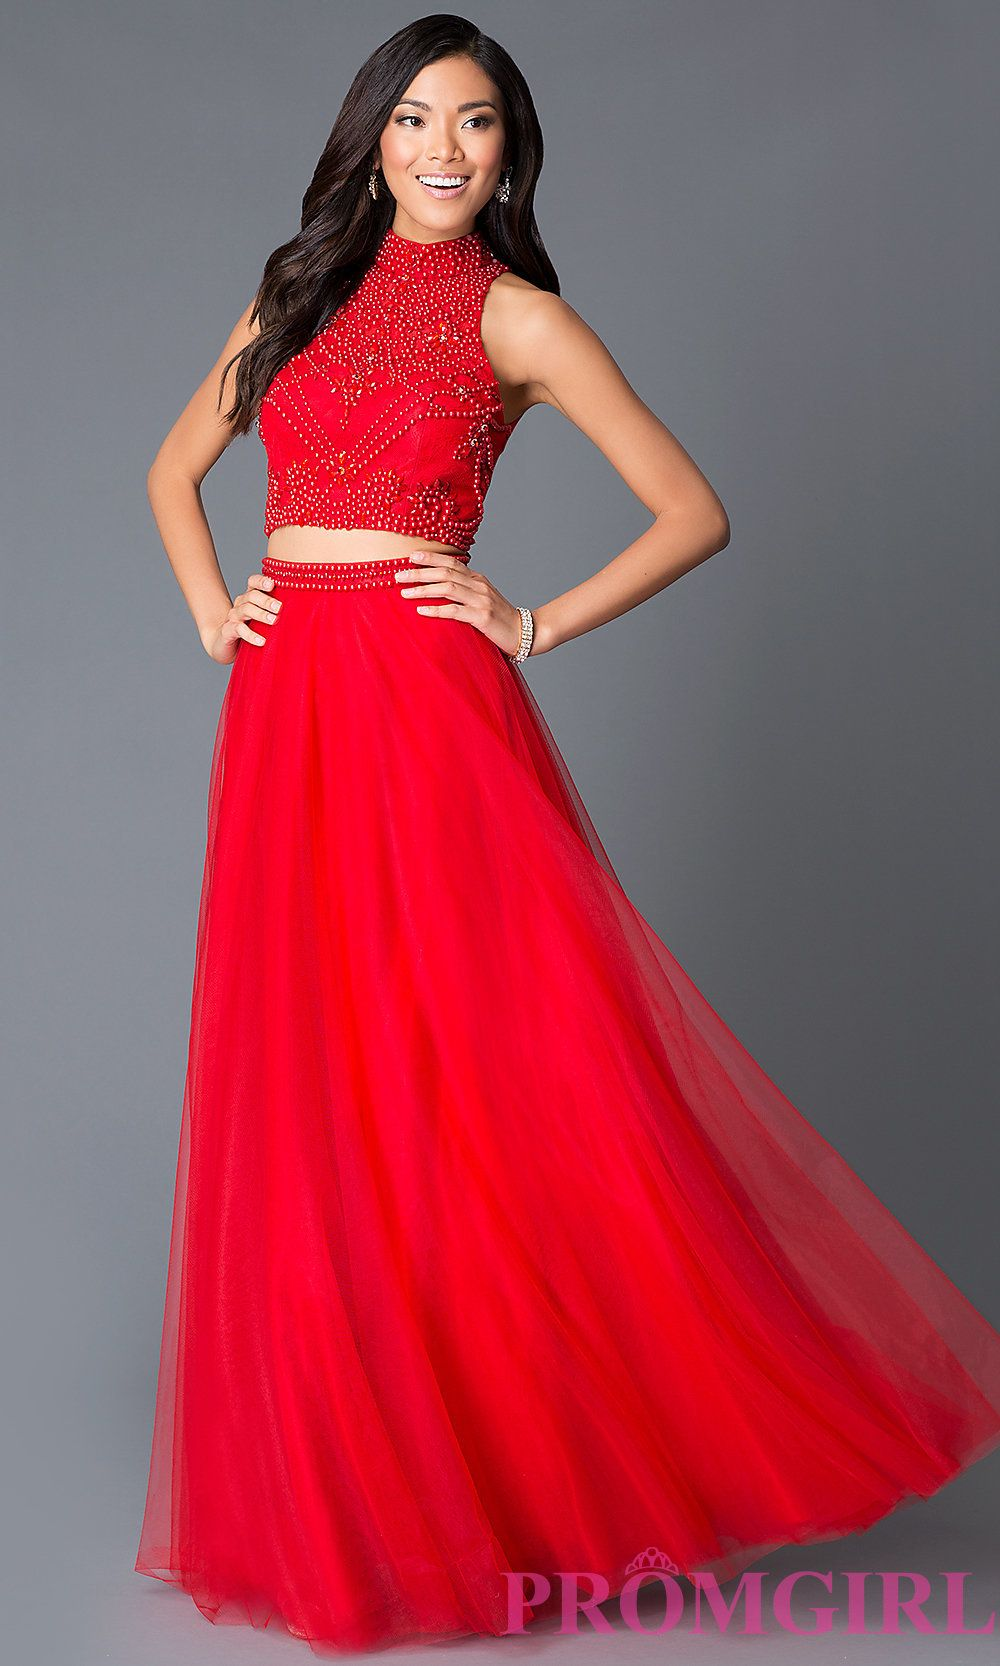 Wedding Red Long Dresses high neck red two piece beaded long prom dress style na 8173 8173